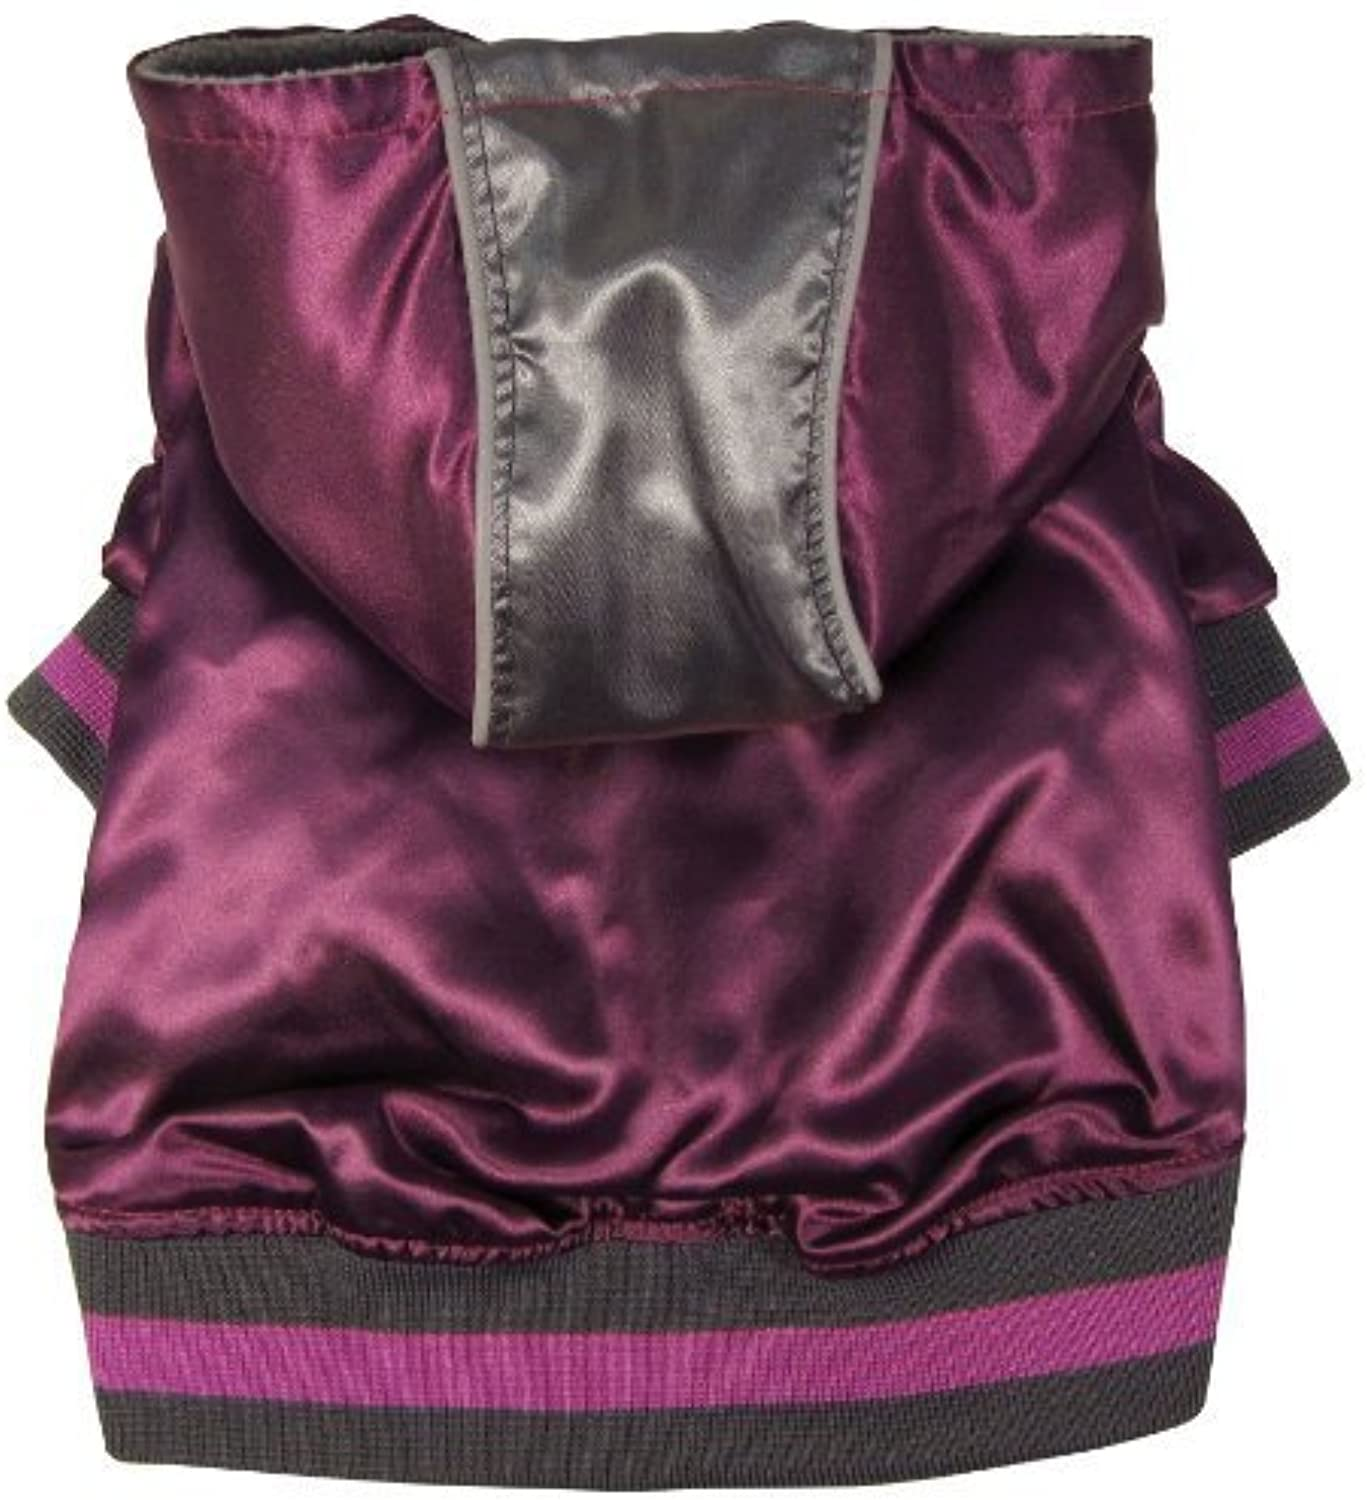 Dogit Style Metallic Dog Hoodie, Small, Purple by Dogit